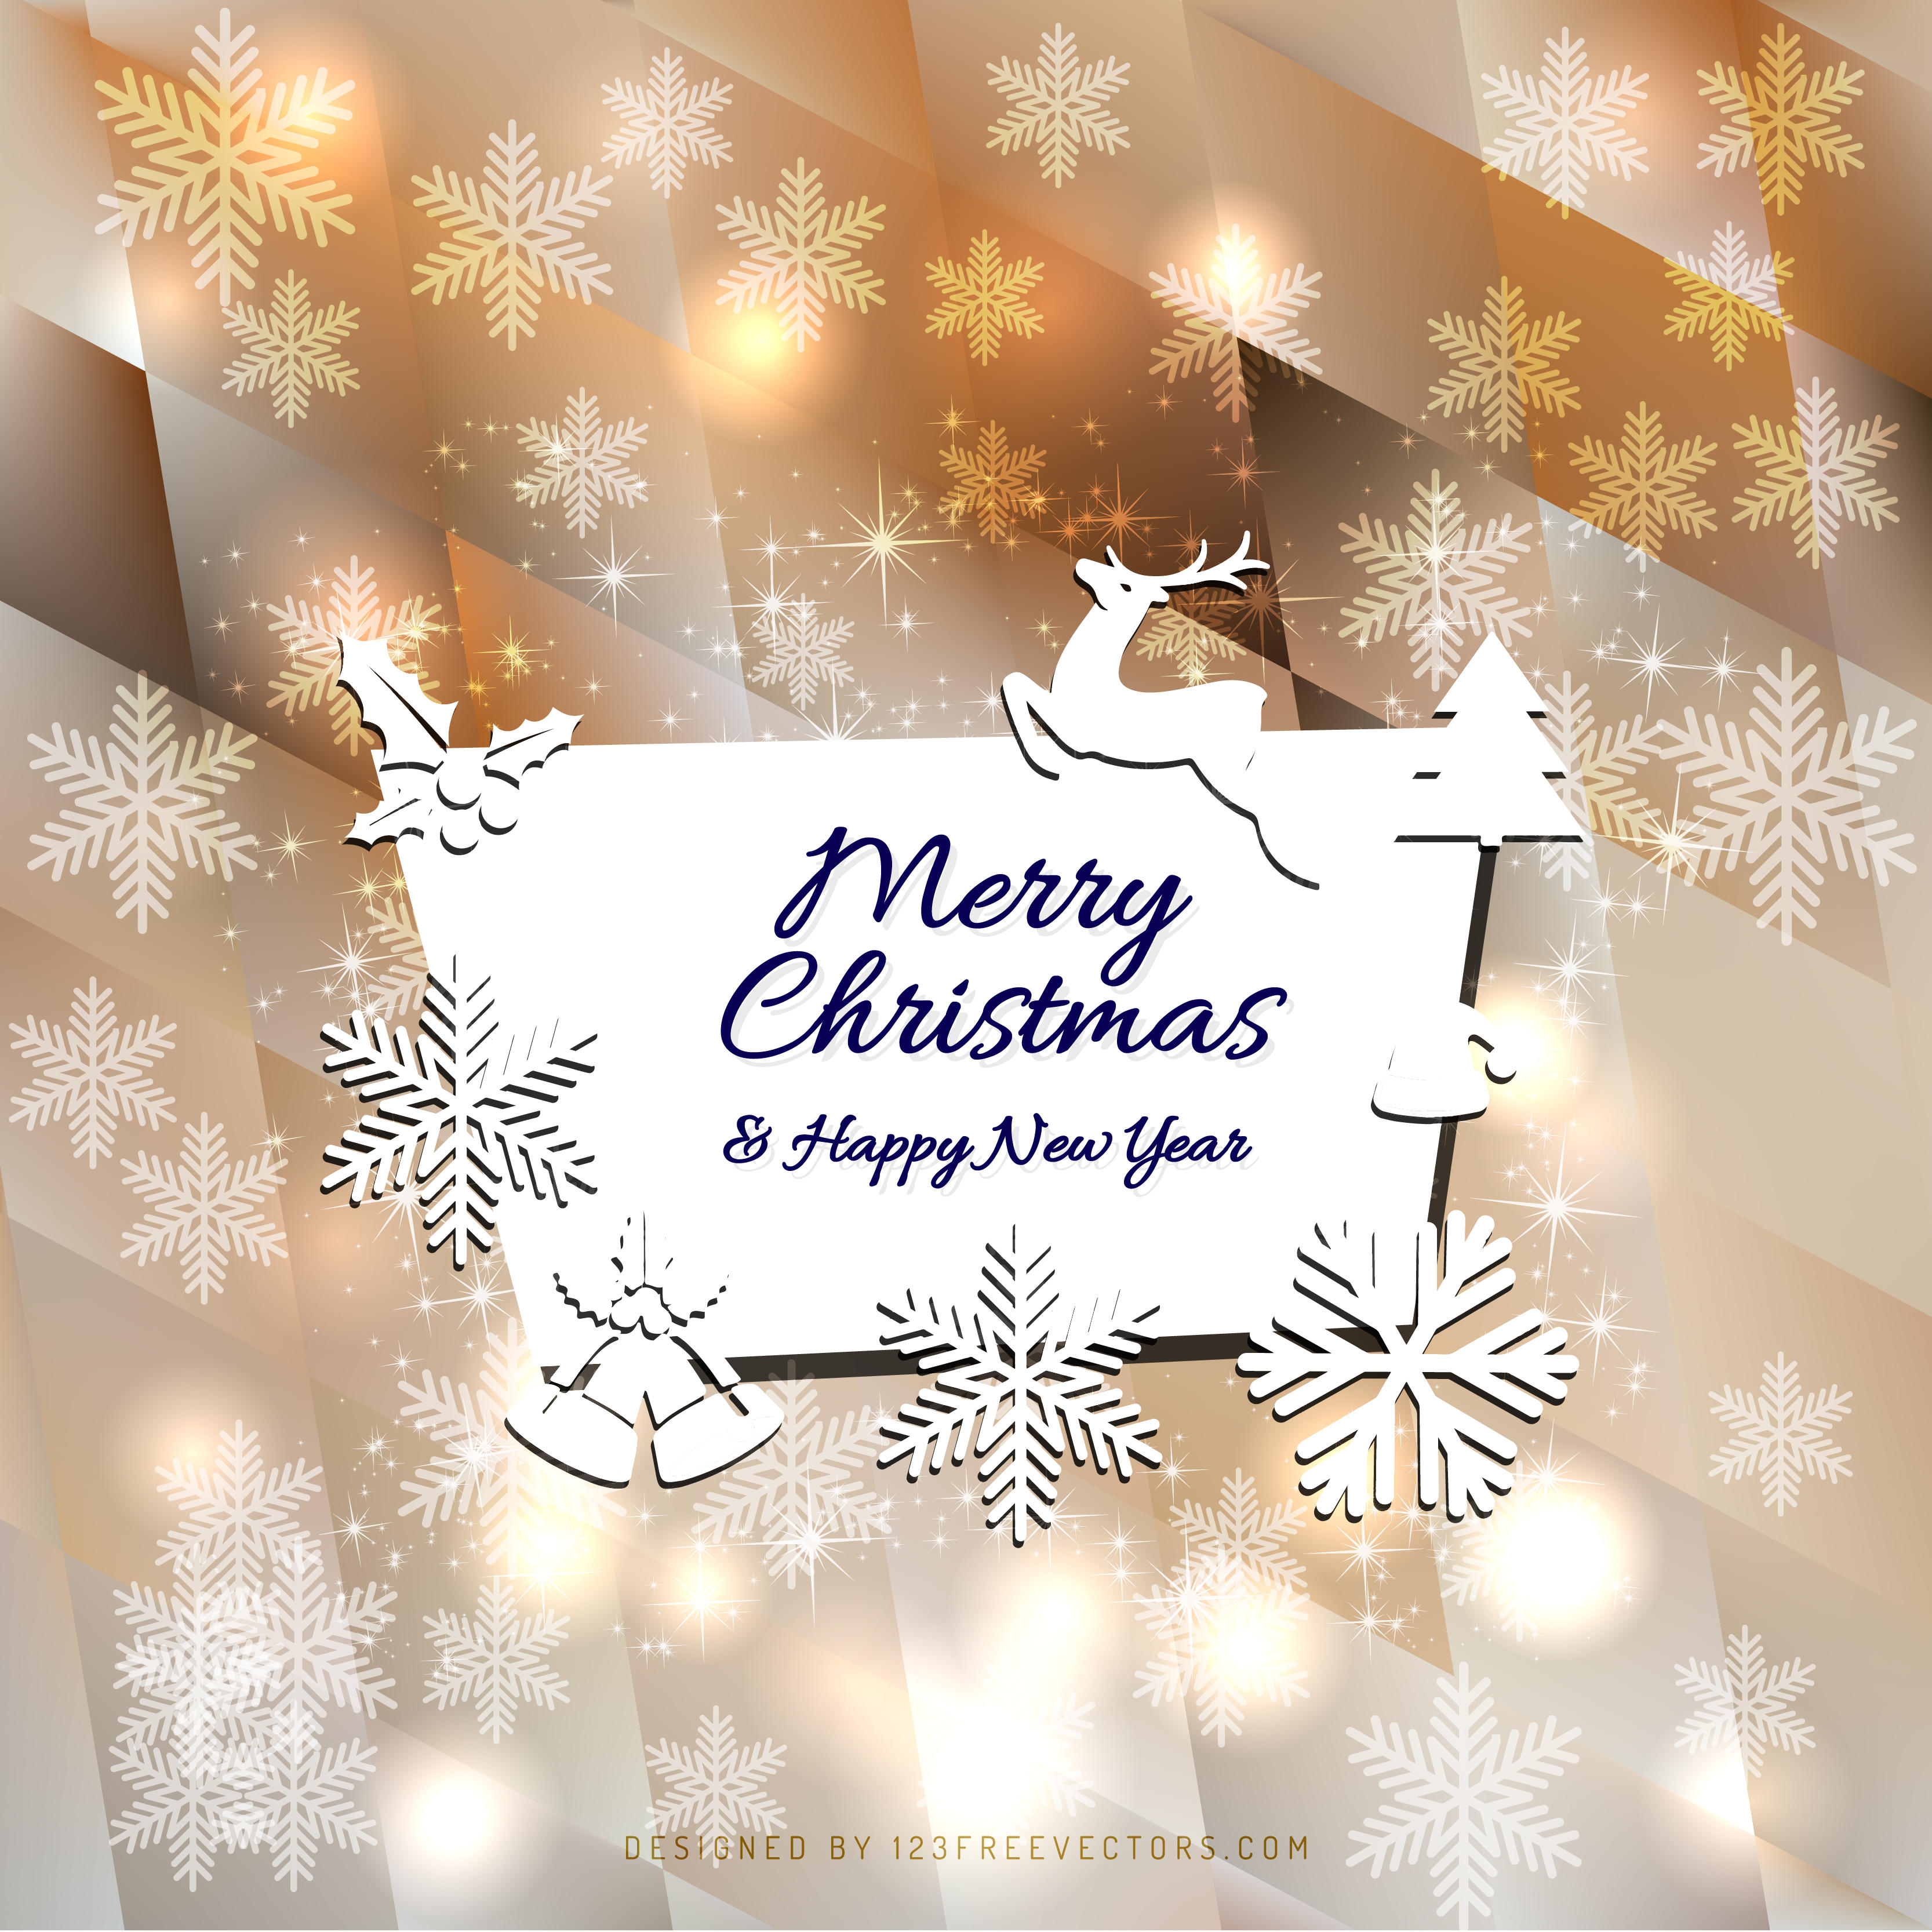 Merry Christmas and Happy New Year Card Background Template     Merry Christmas and Happy New Year Card Background Template   123Freevectors